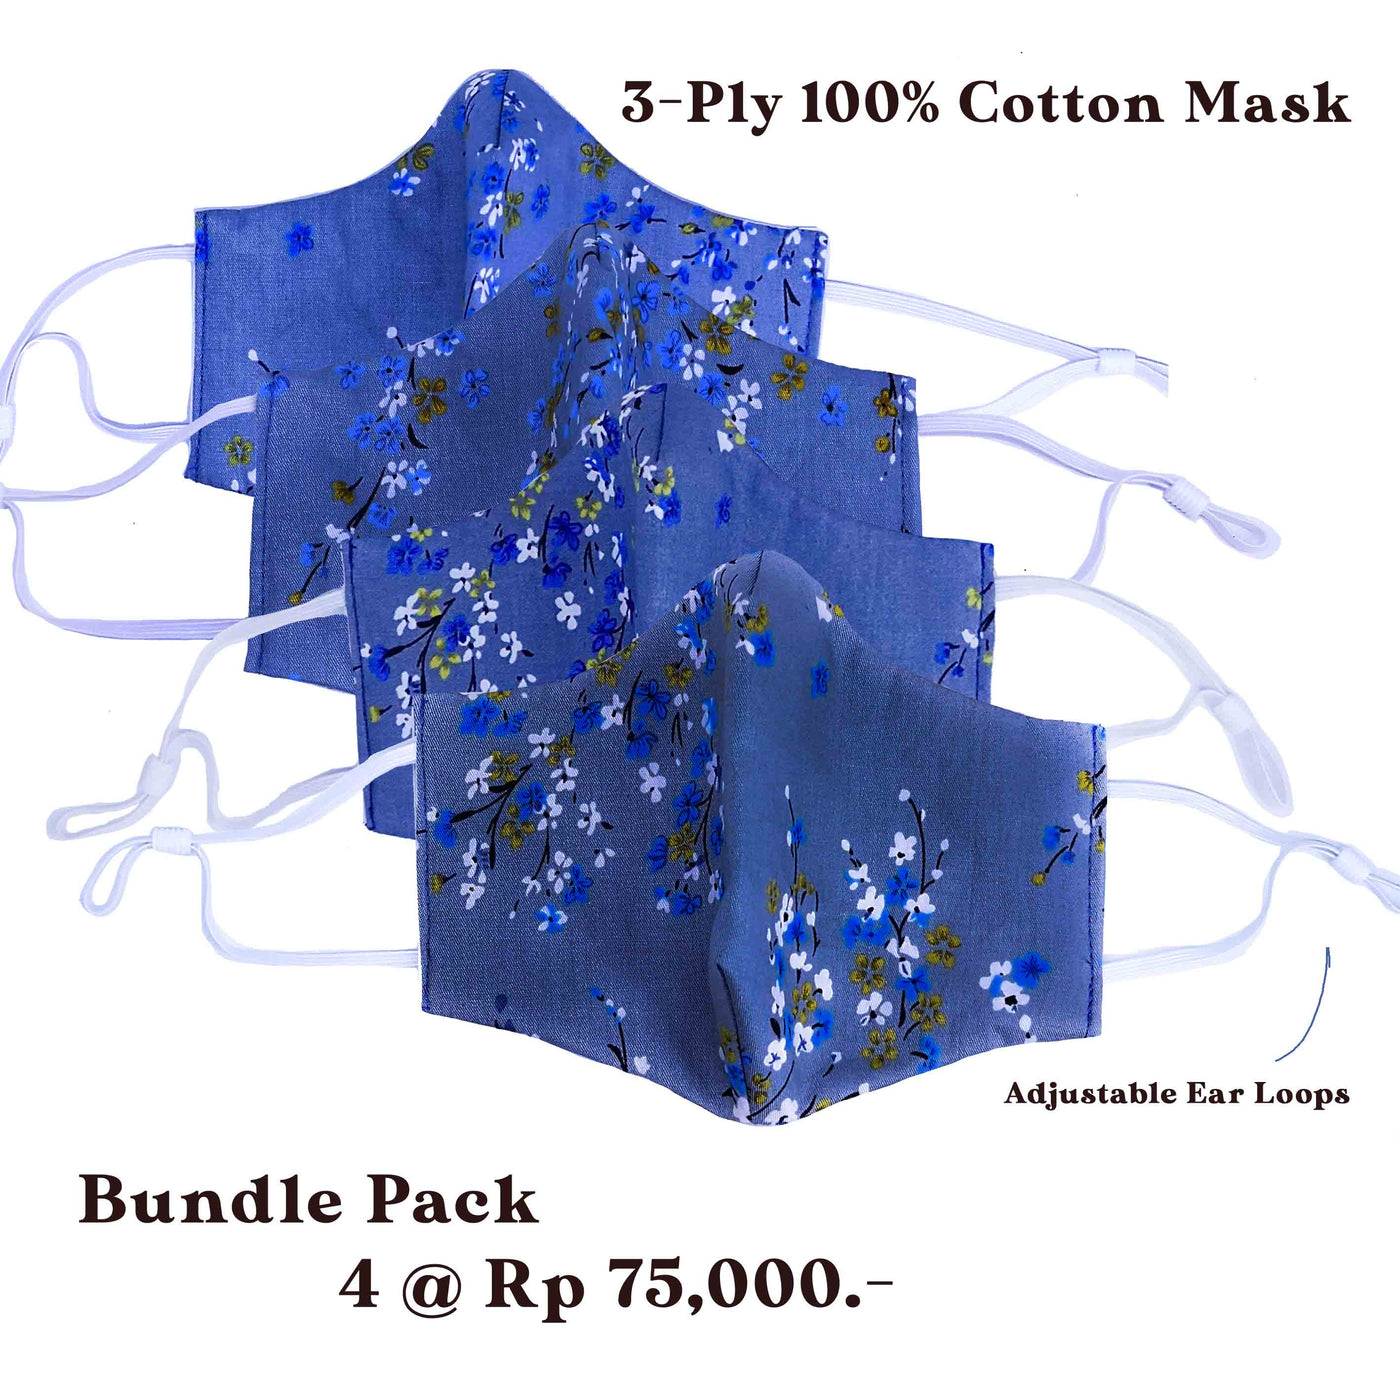 Bundle Pack: 4 pcs of 3-Ply Face Mask with Adjustable Ear Loops (100% Cotton)